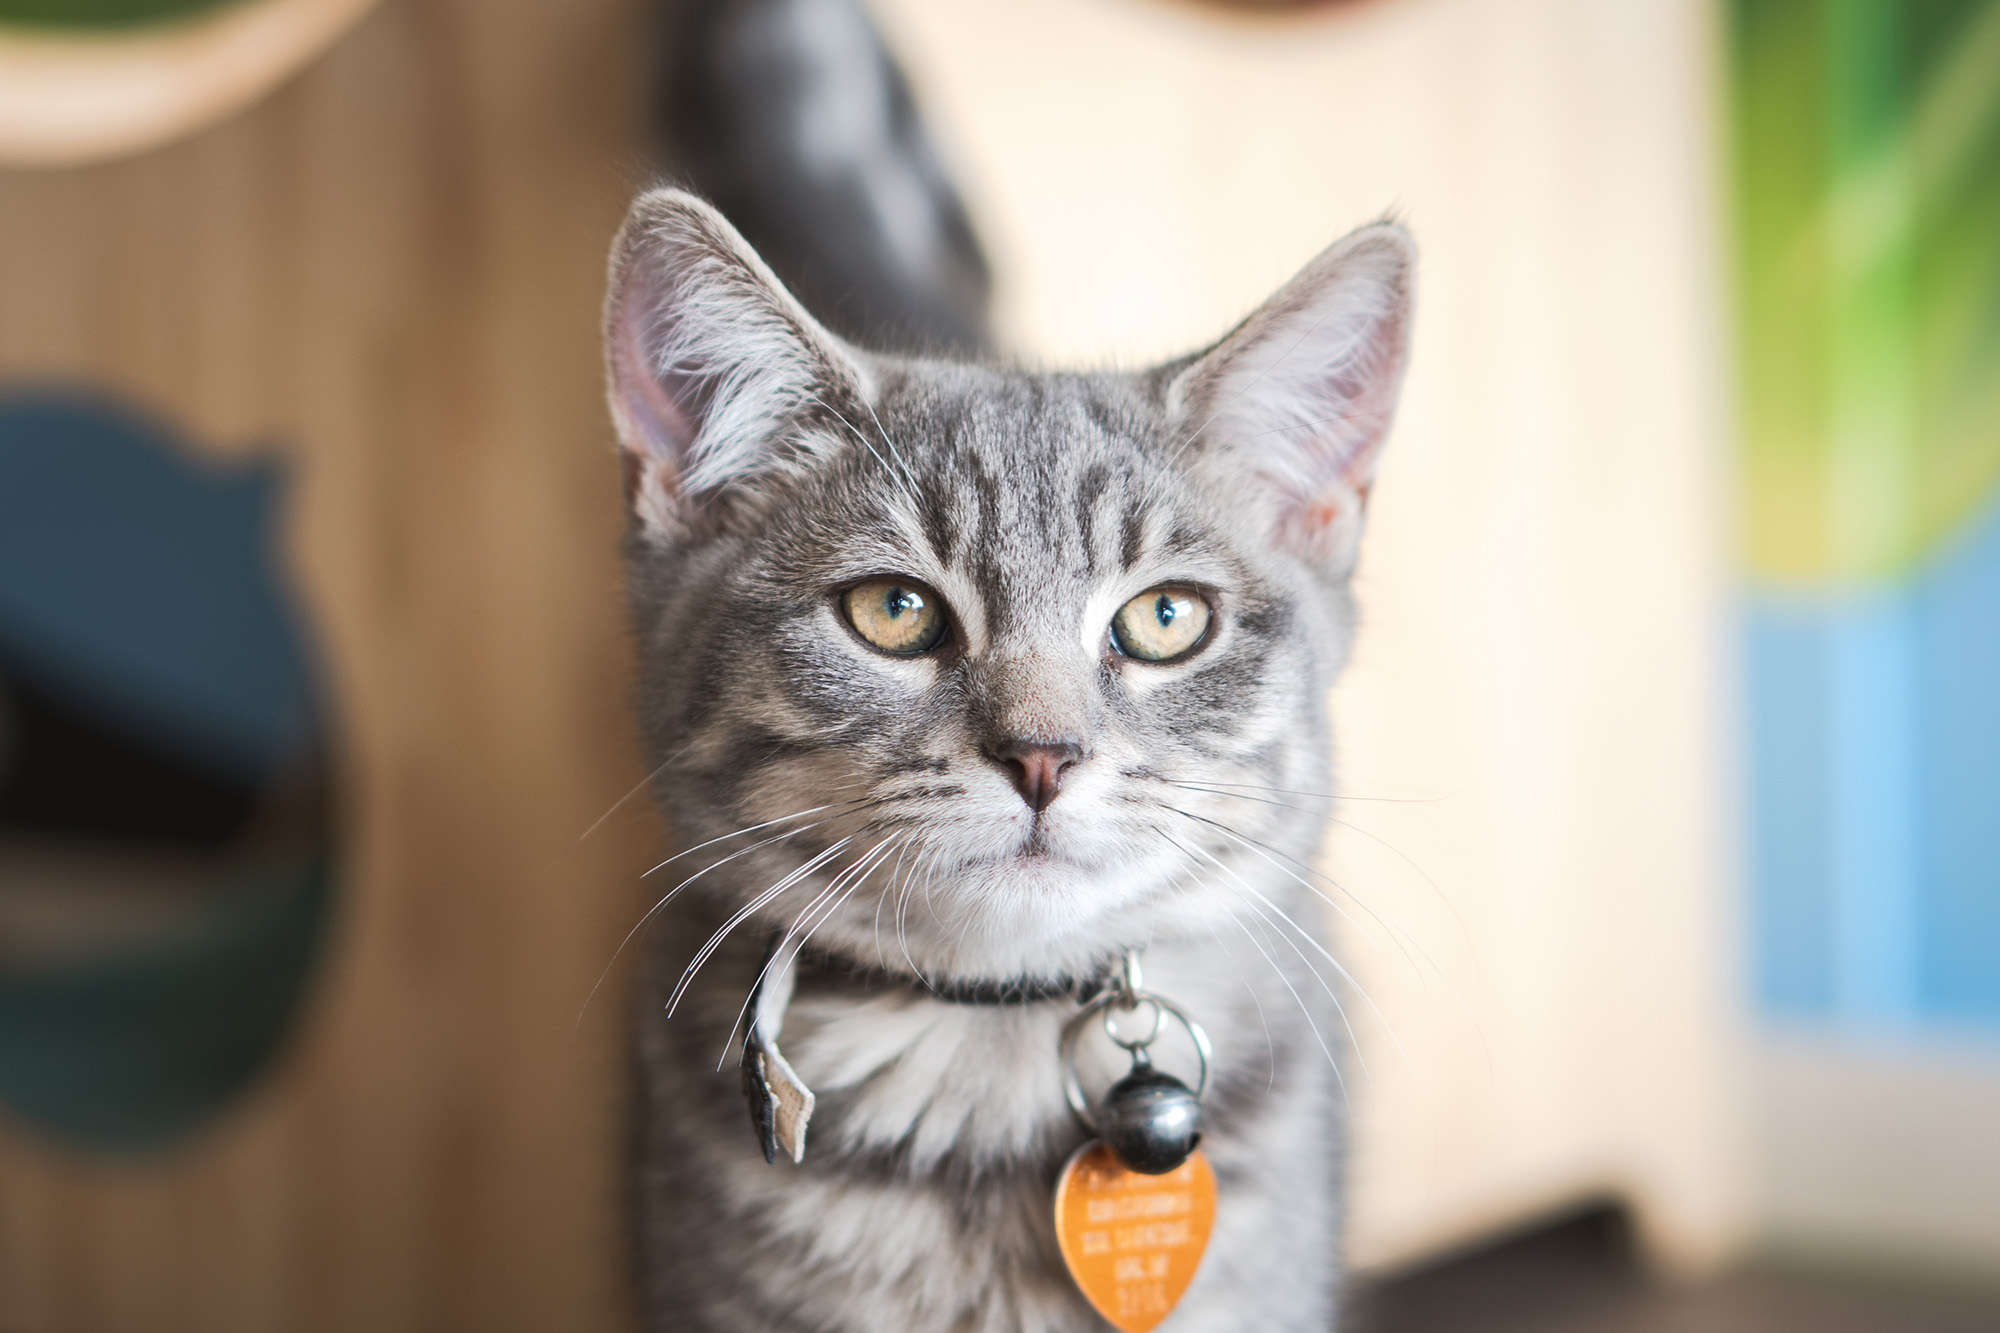 Larry - Adopted 14/3/19